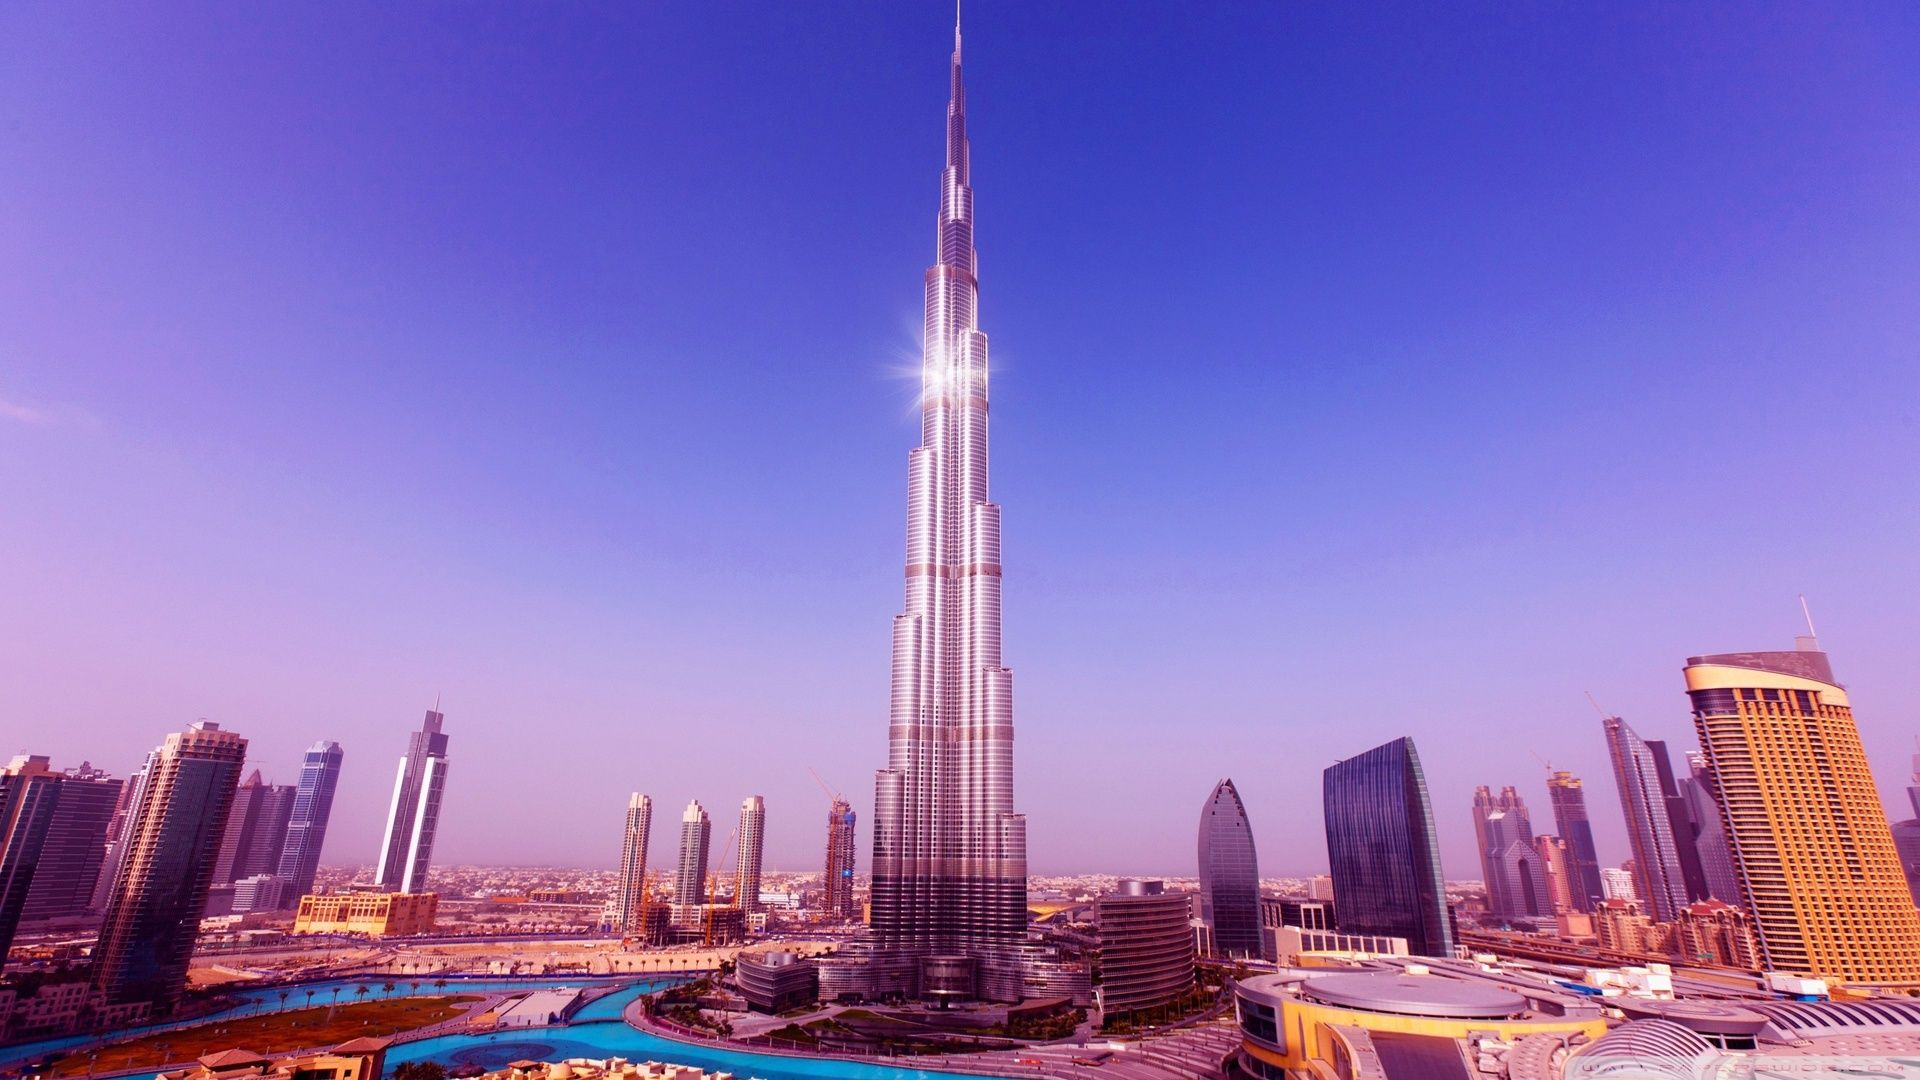 Worlds Tallest Tower Burj Khalifa Wallpaper 1920x1080 File Army Burj Khalifa Khalifa Dubai Dubai City